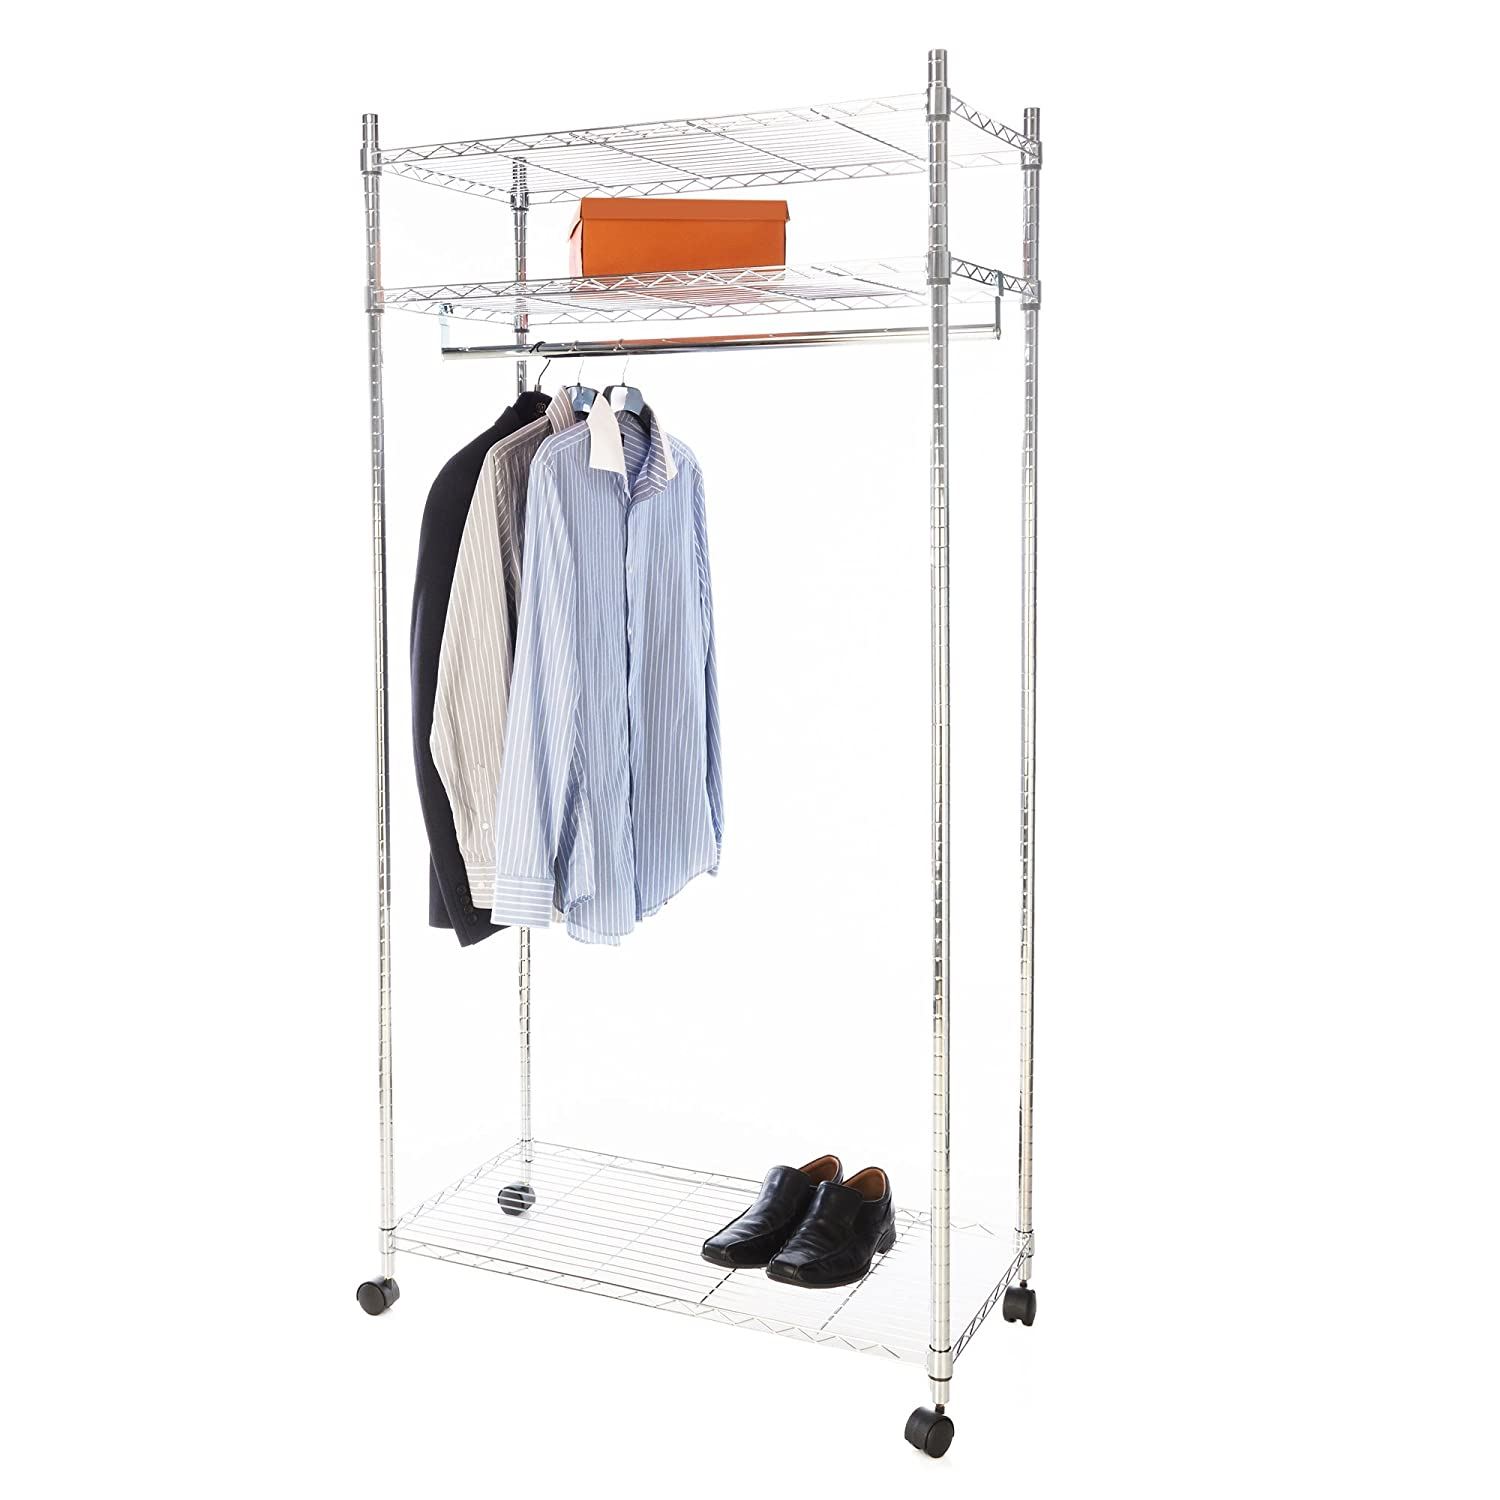 Heavy Duty Premium Clothes Rail - Over 100kg Total Capacity - Extra Shelves For Storage - Fast & Easy to Build - Built to Last - Maximum Storage in Minimum Space - Commercial Grade Chromed Steel, Wheels For Easy Movement, Adjustable Shelves For Ultima